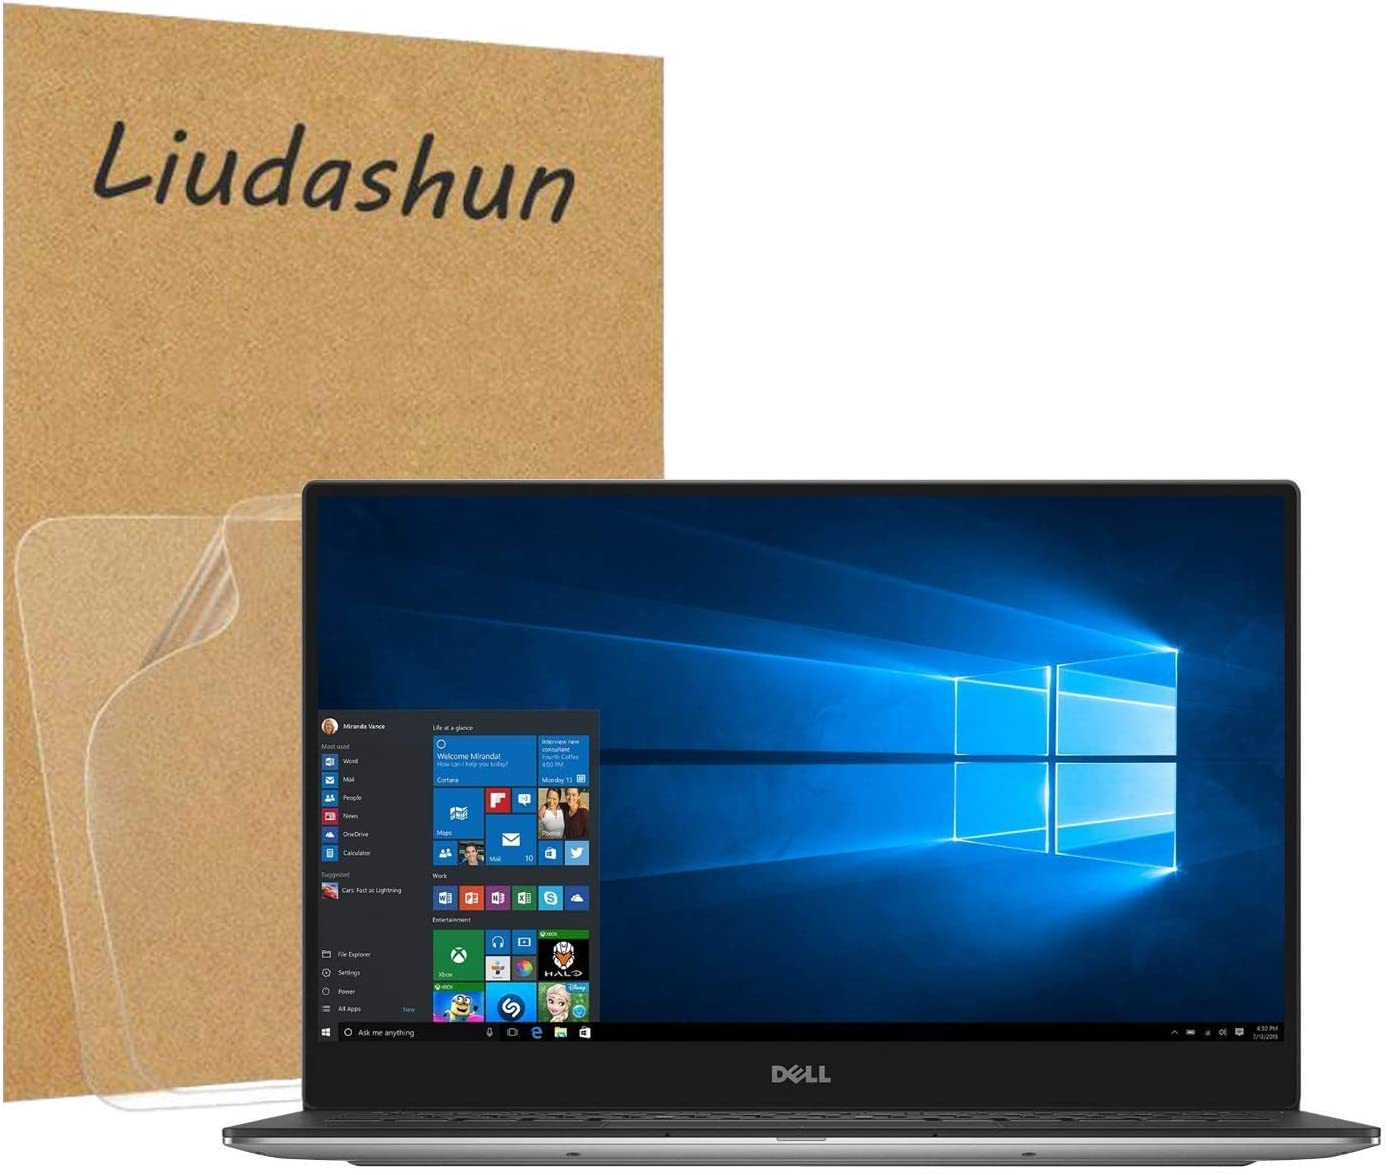 """Liudashun Screen Protector for Dell xps 9360 13.3"""" Laptop HD Clear Invisible Glossy Scratchproof (2-Pack)"""